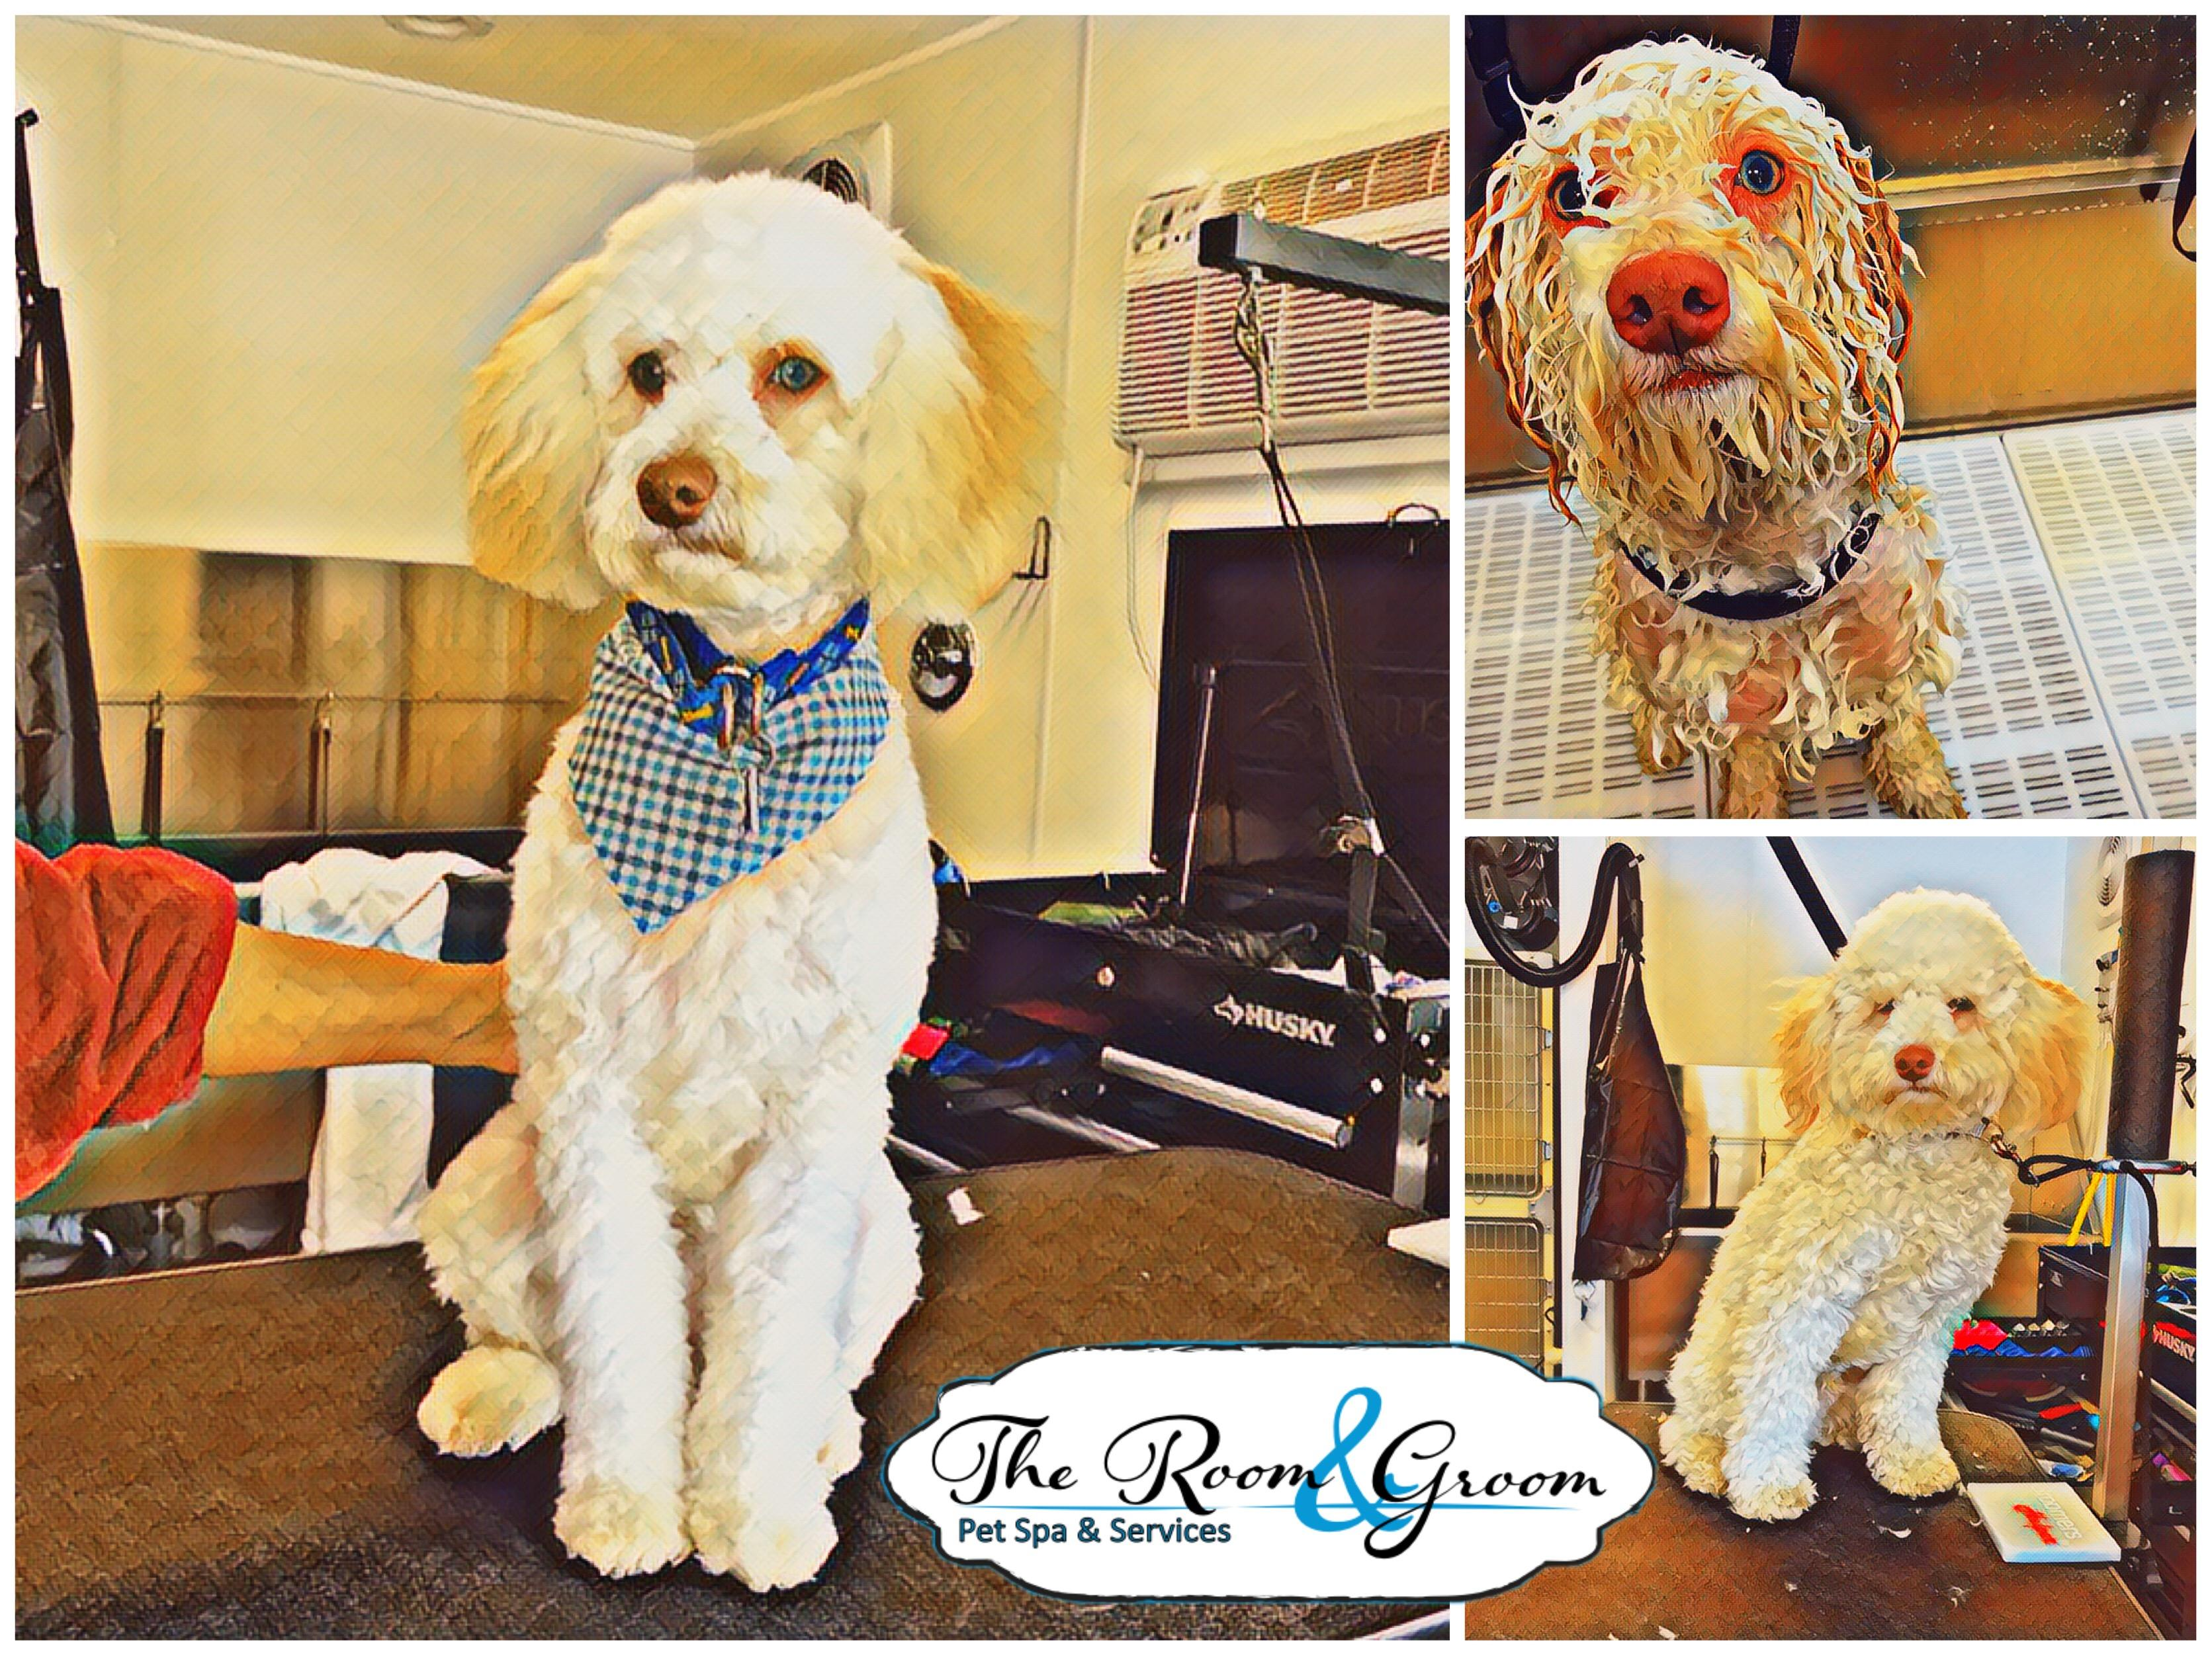 The Room & Groom, Pet Spa & Services image 74